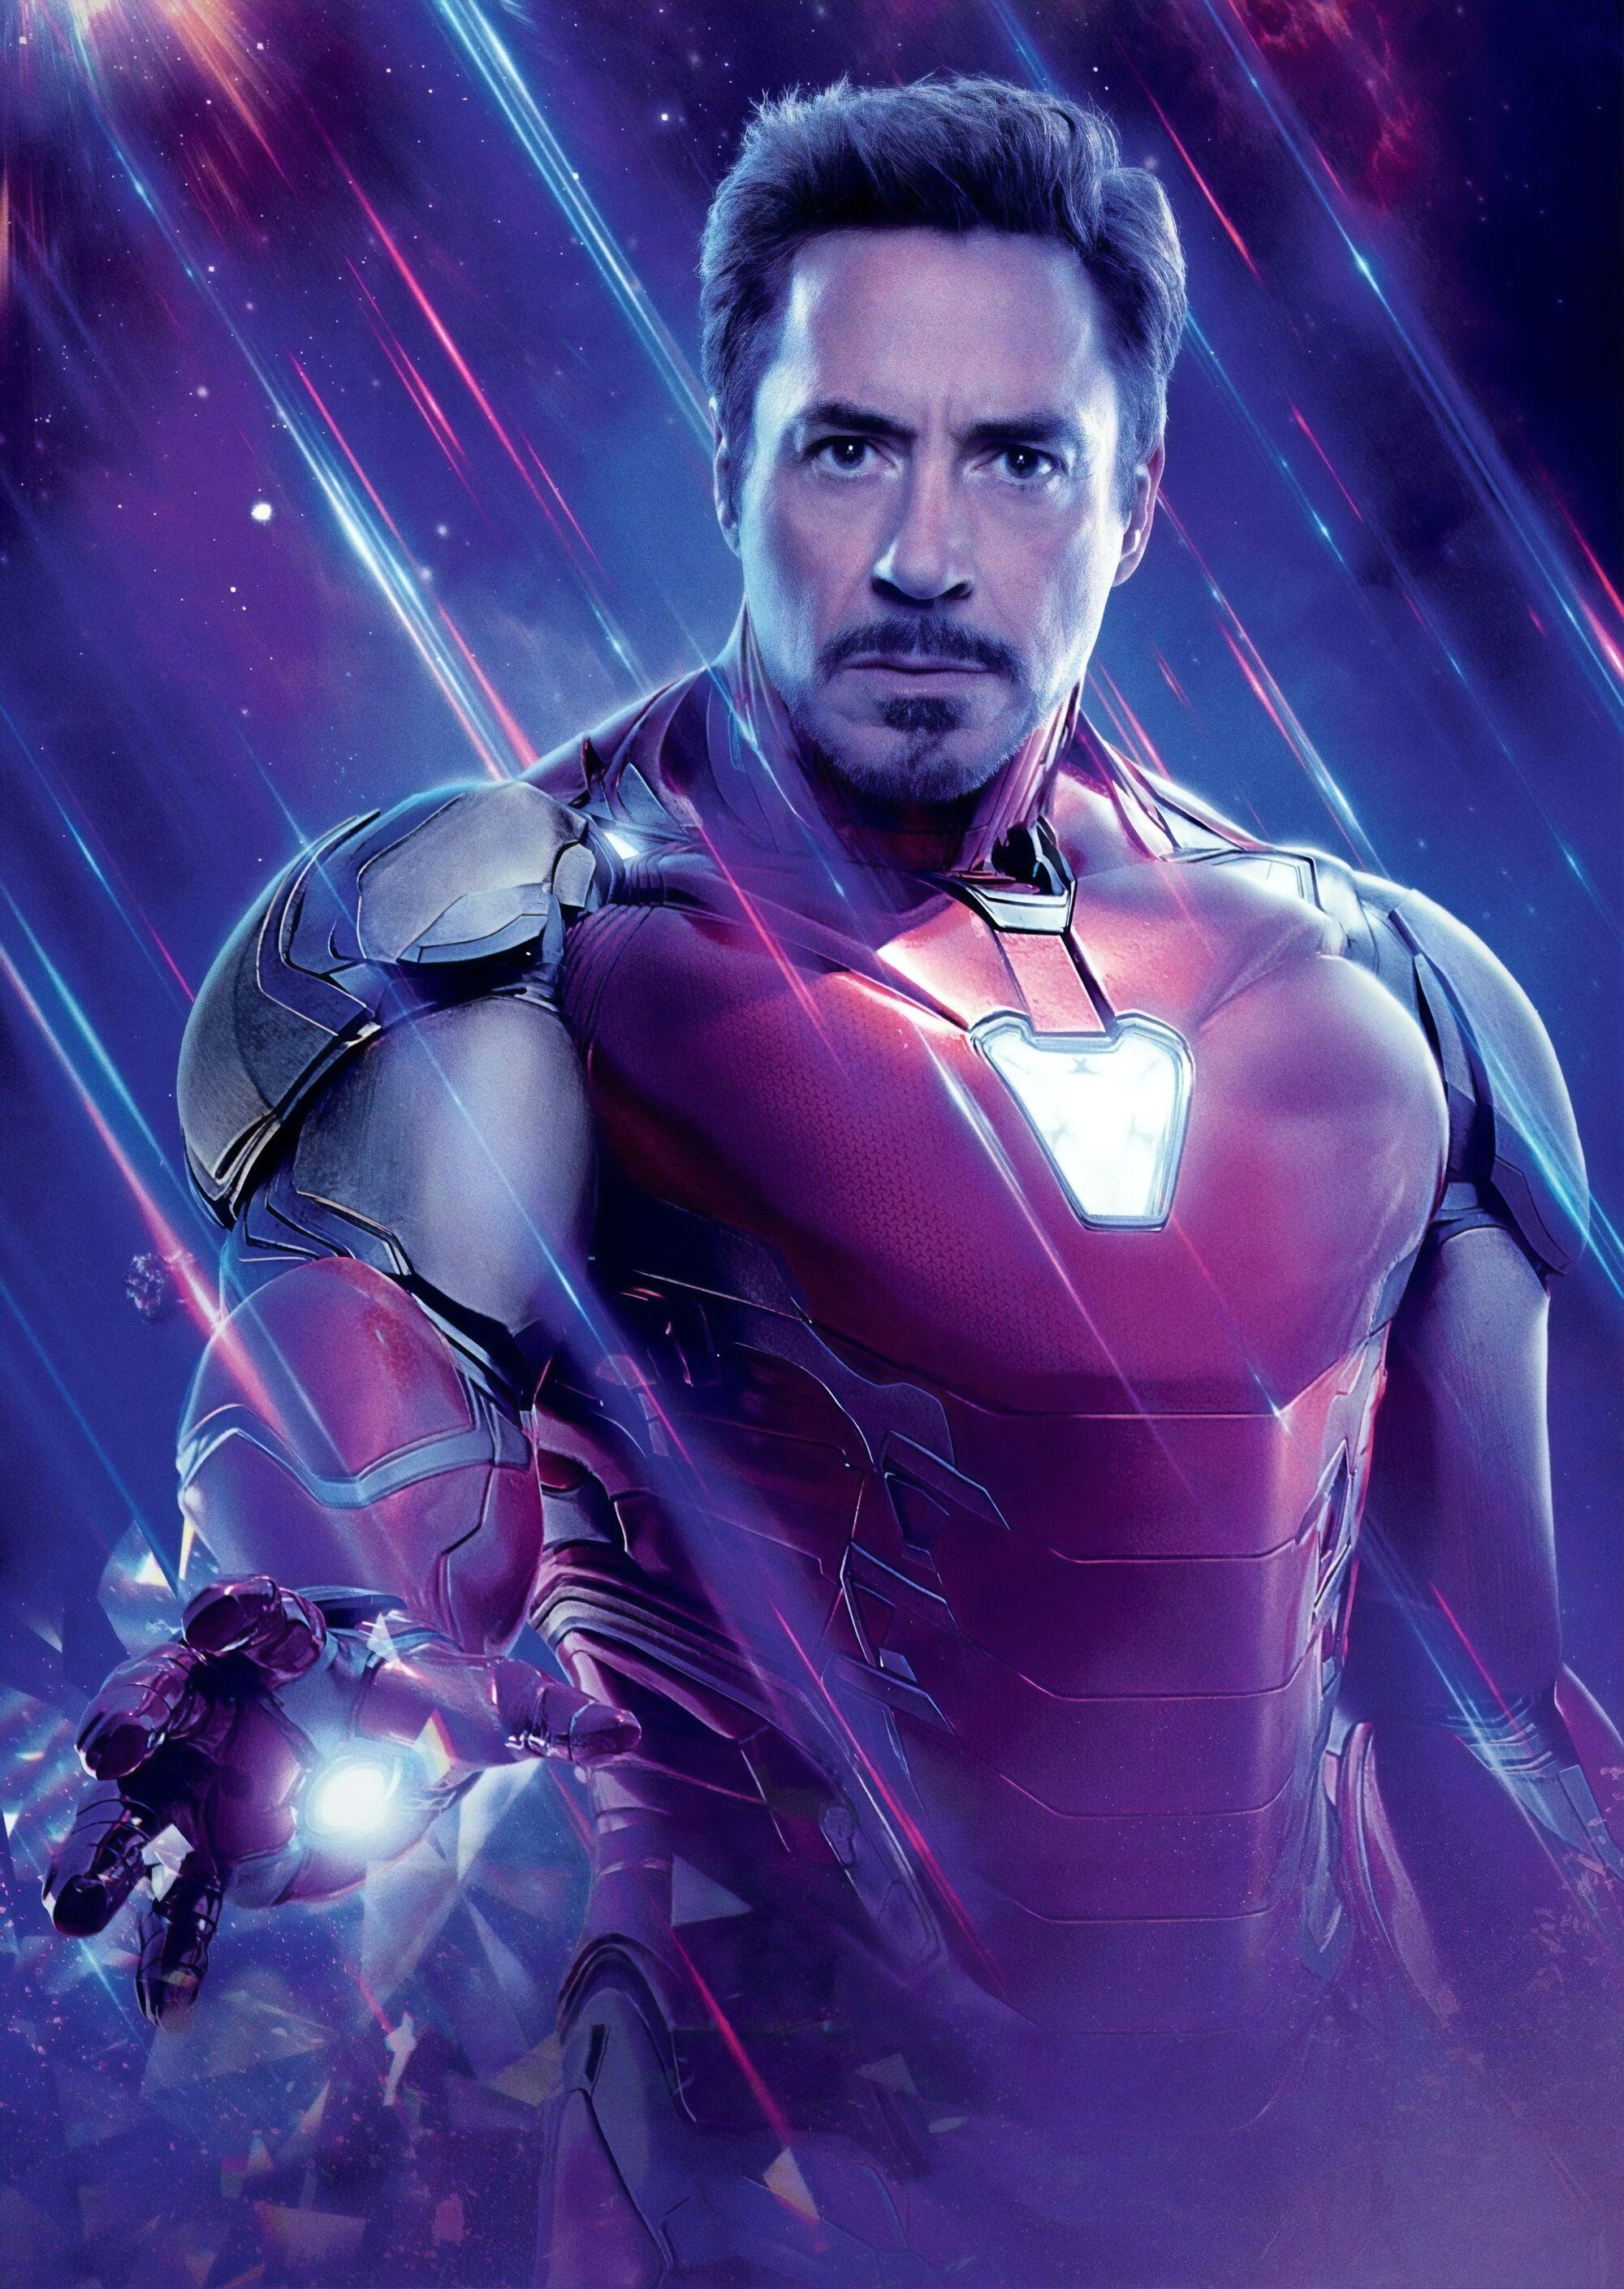 d8758c788229a Iron Man | Marvel Cinematic Universe Wiki | FANDOM powered by Wikia